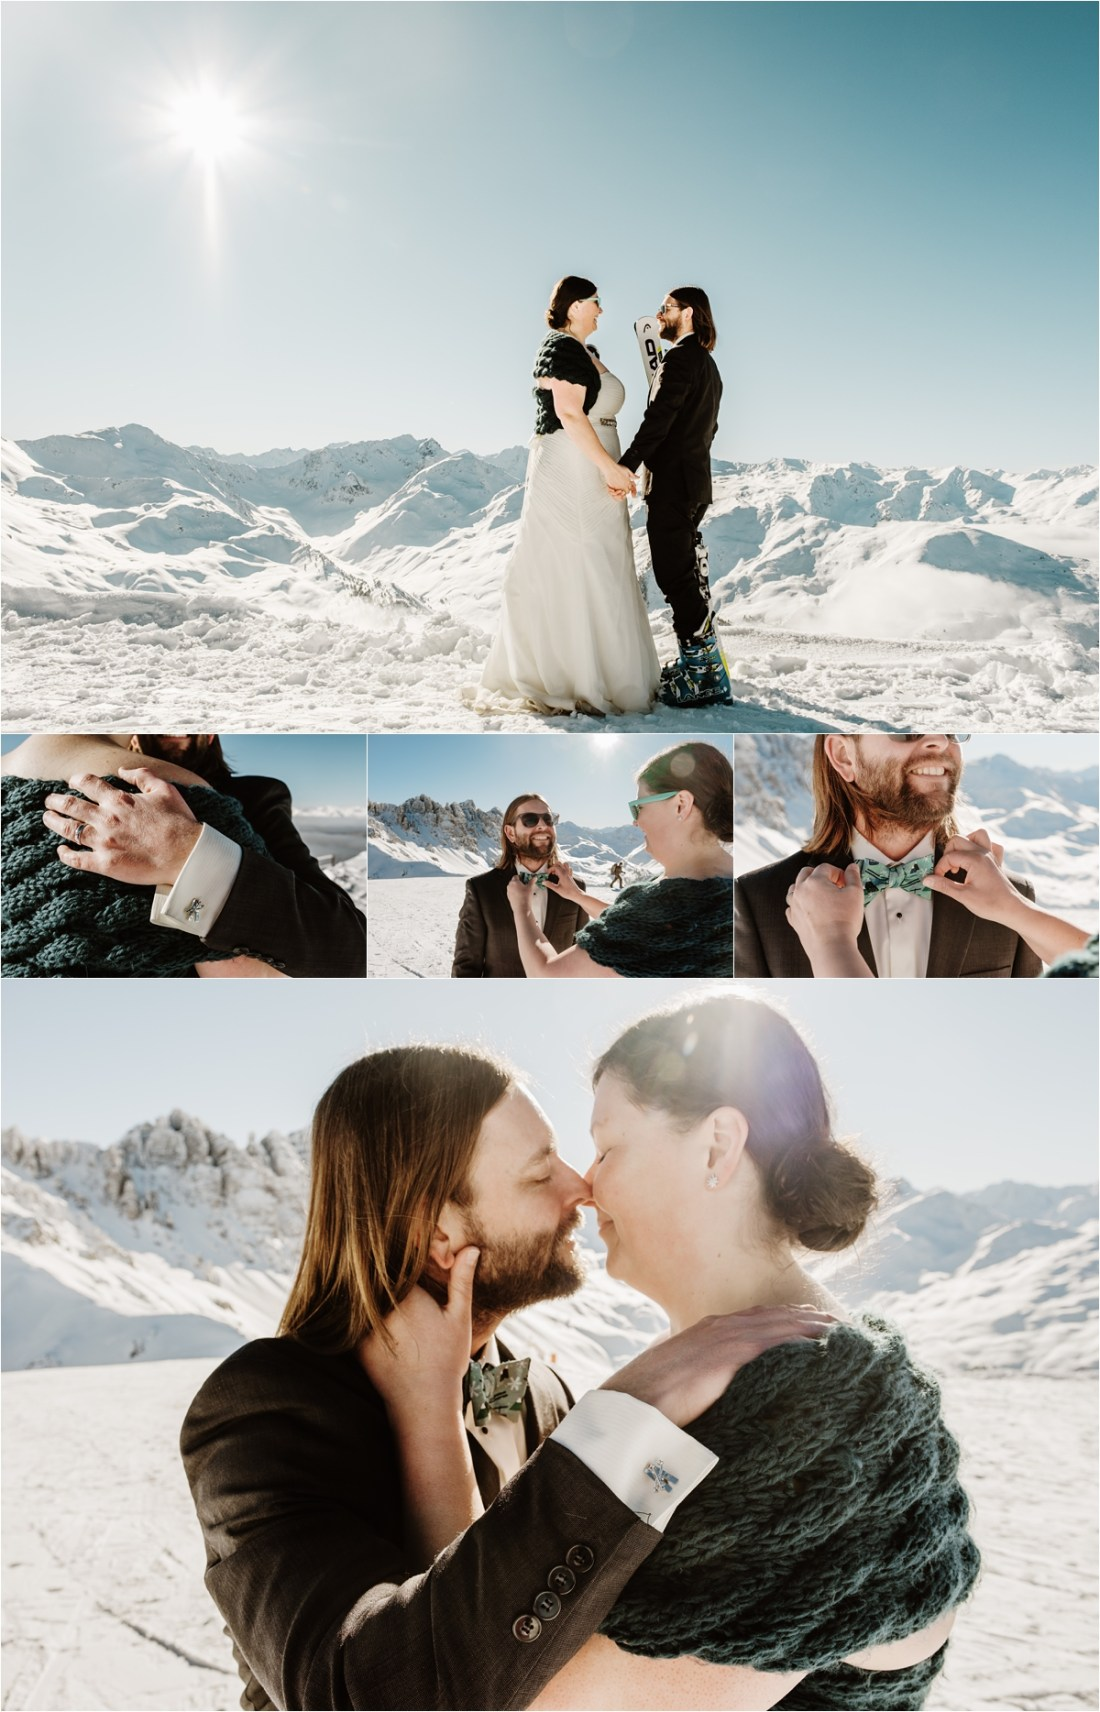 Abby & Jeff get married at the top of Axamer Lizum by Wild Connections Photography